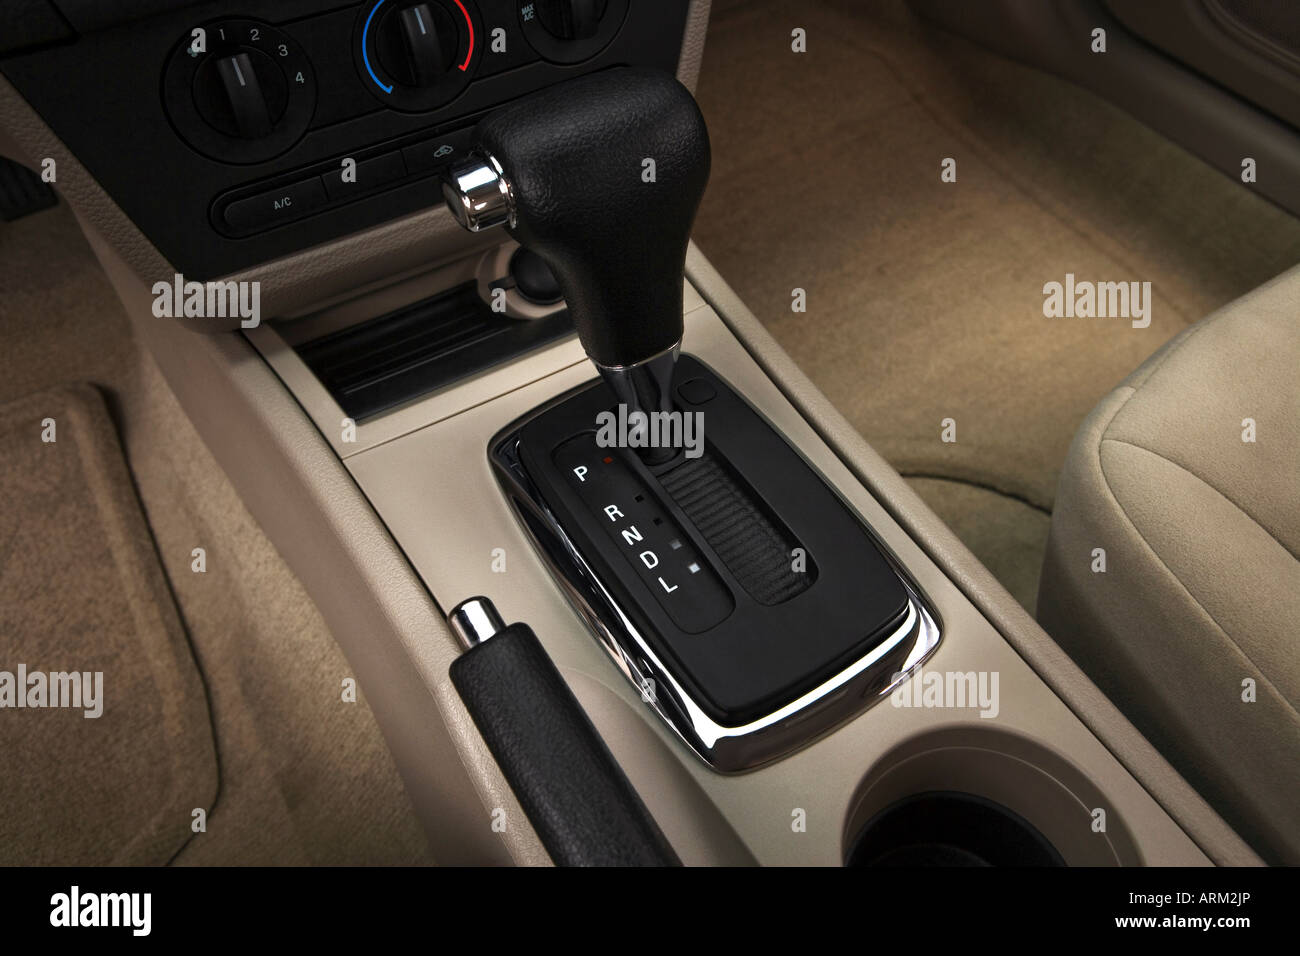 2008 Ford Fusion S in White - Gear shifter/center console - Stock Image